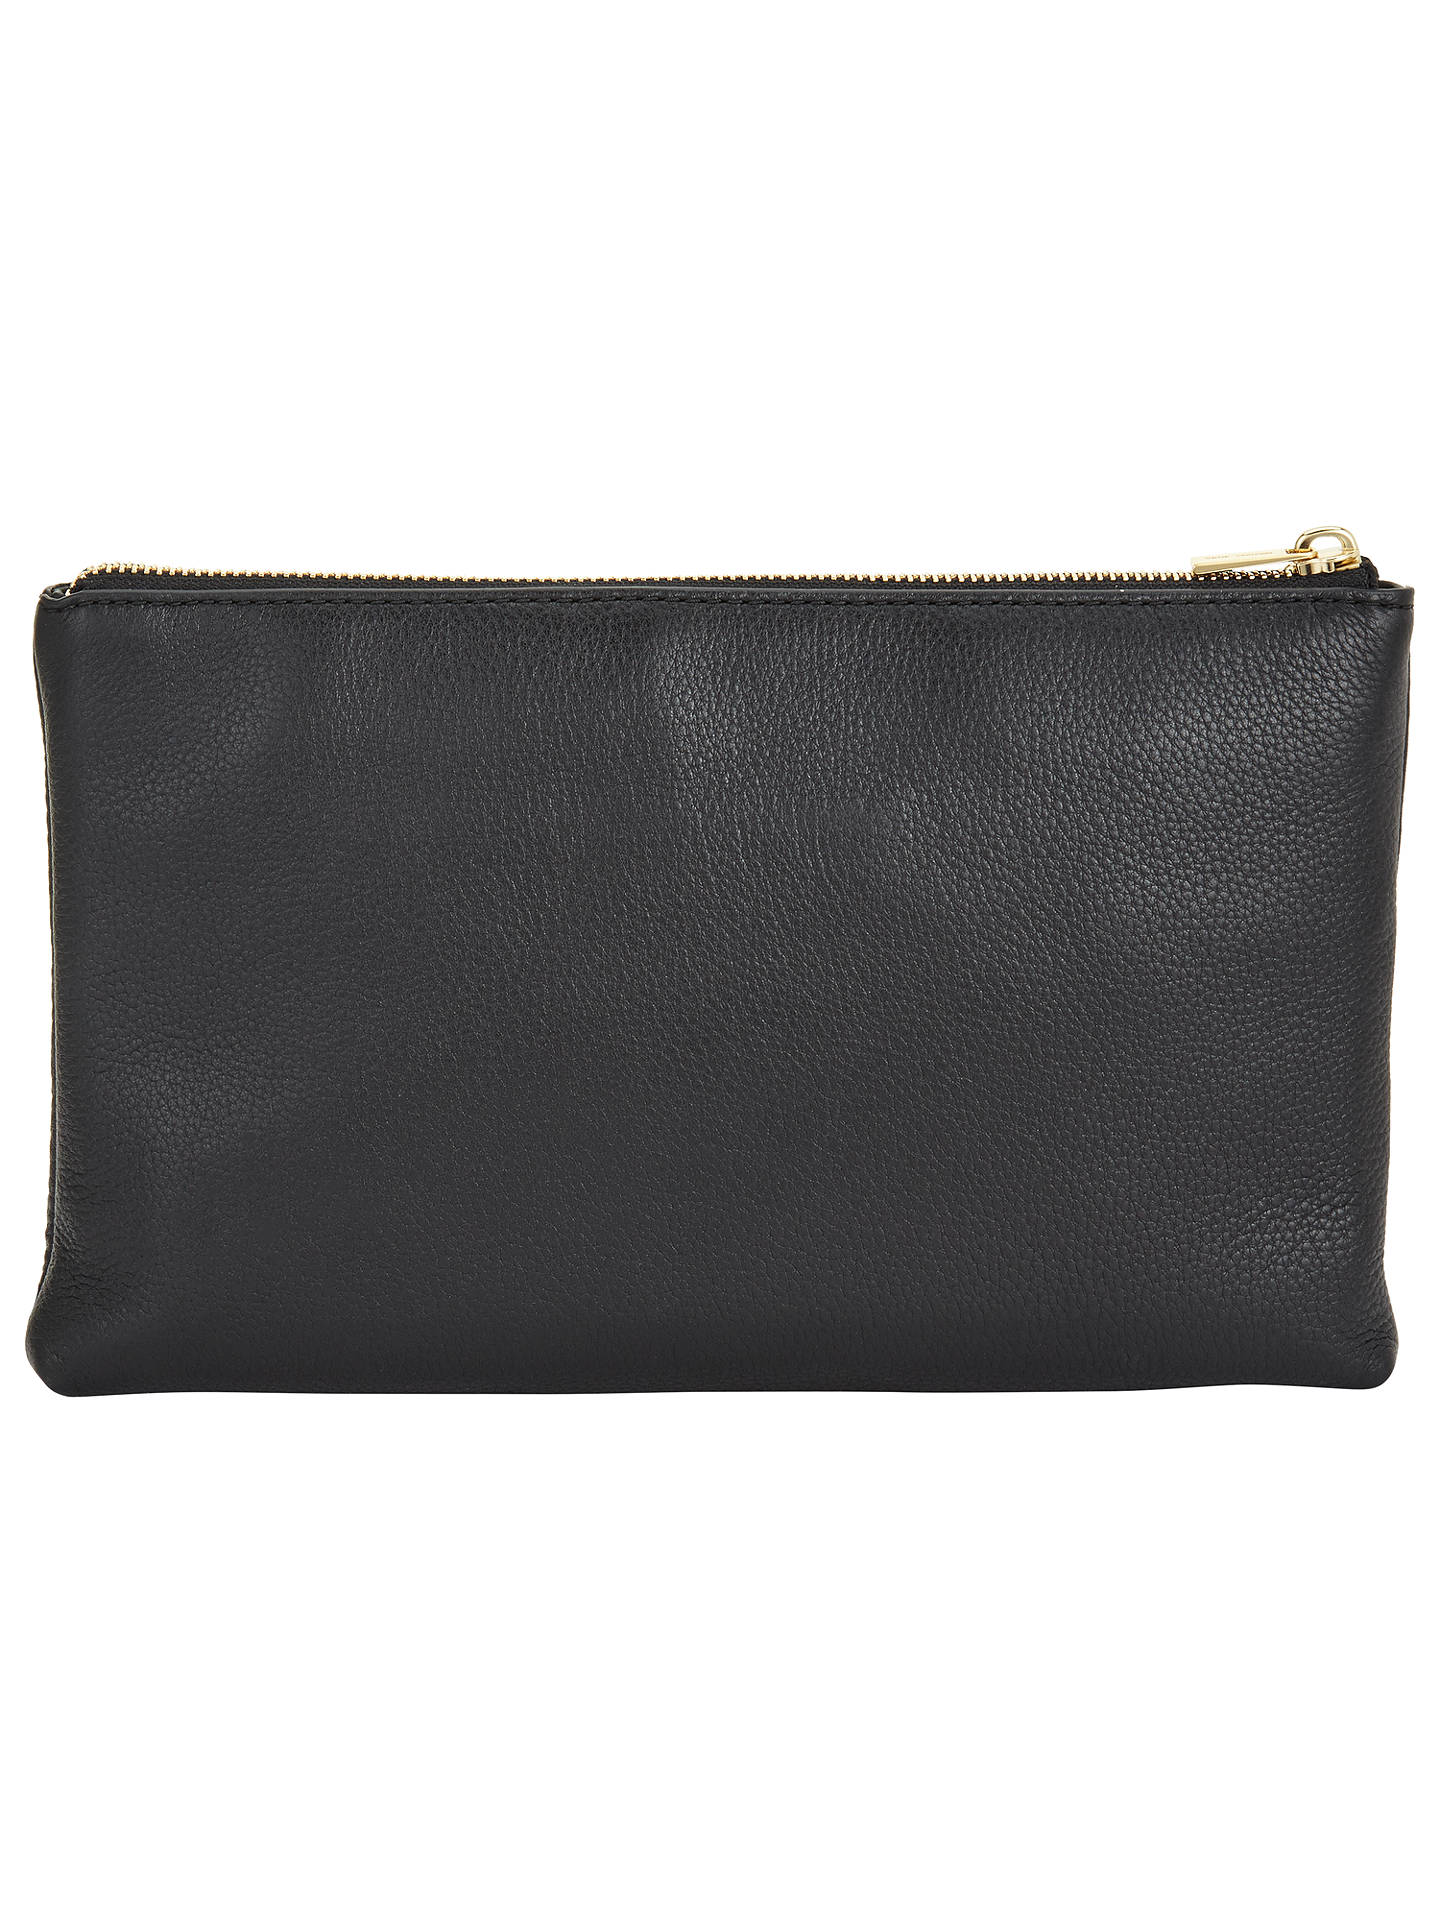 c7493f6d3f26 ... Buy MICHAEL Michael Kors Adele Leather Across Body Purse, Black Online  at johnlewis.com ...